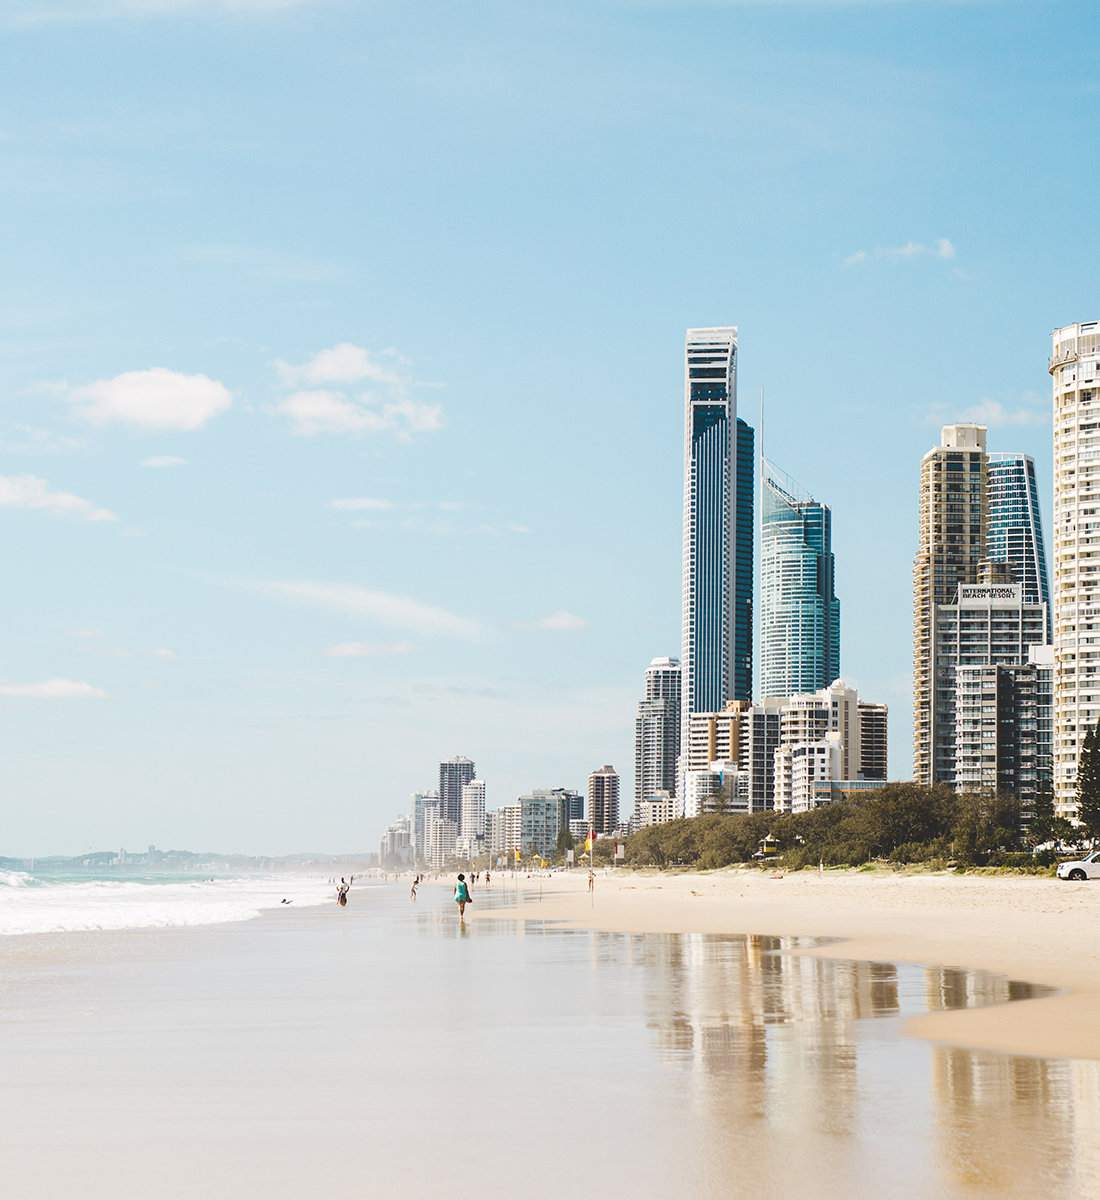 Better Living Gold Coast High Rises on the Beach, Q1 and Skyline